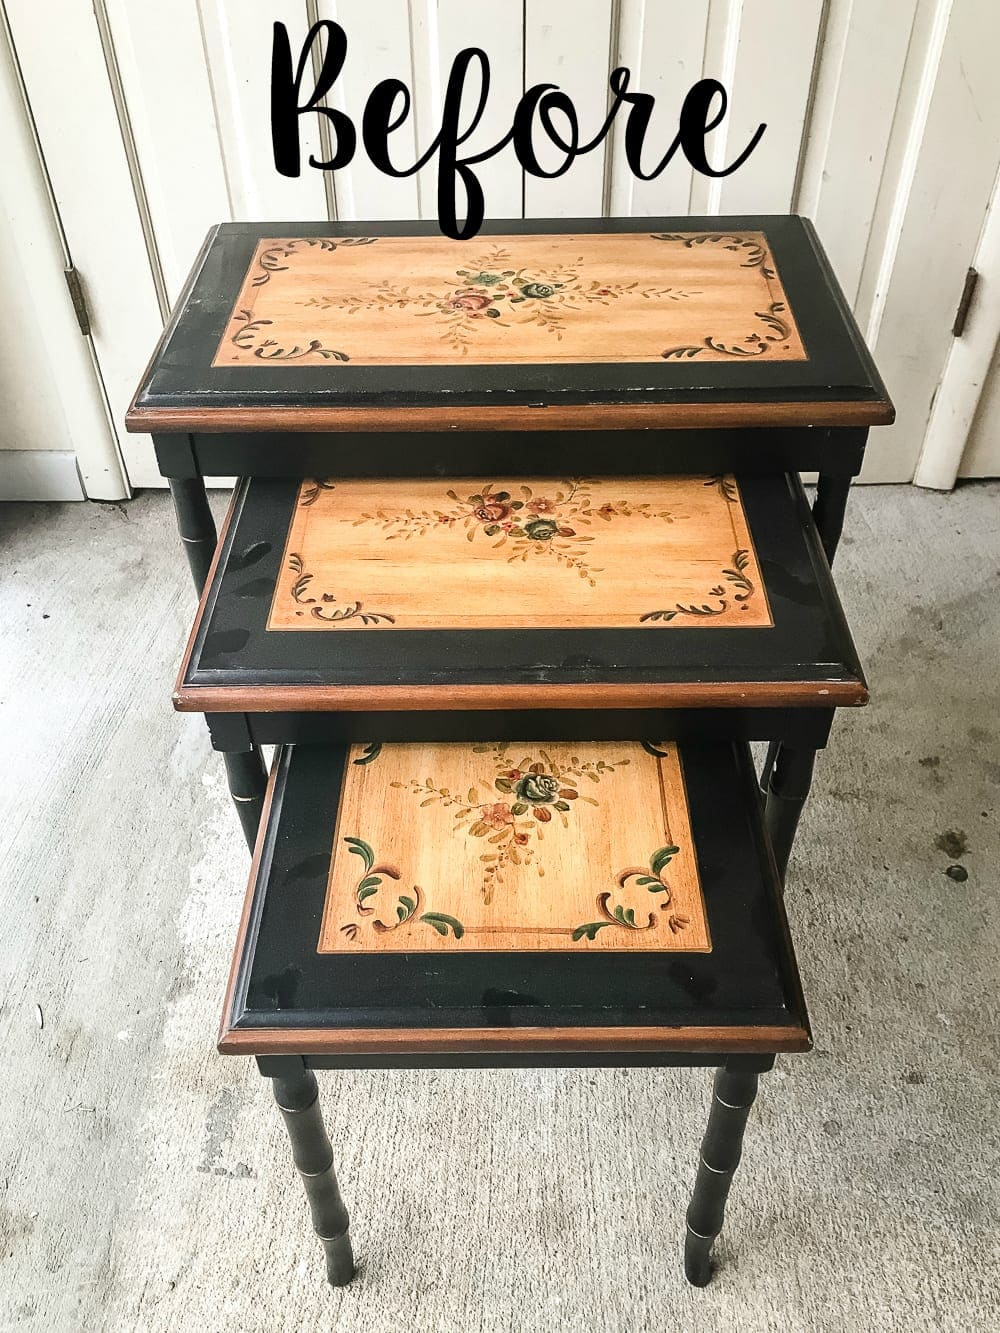 thrifting must have : end tables